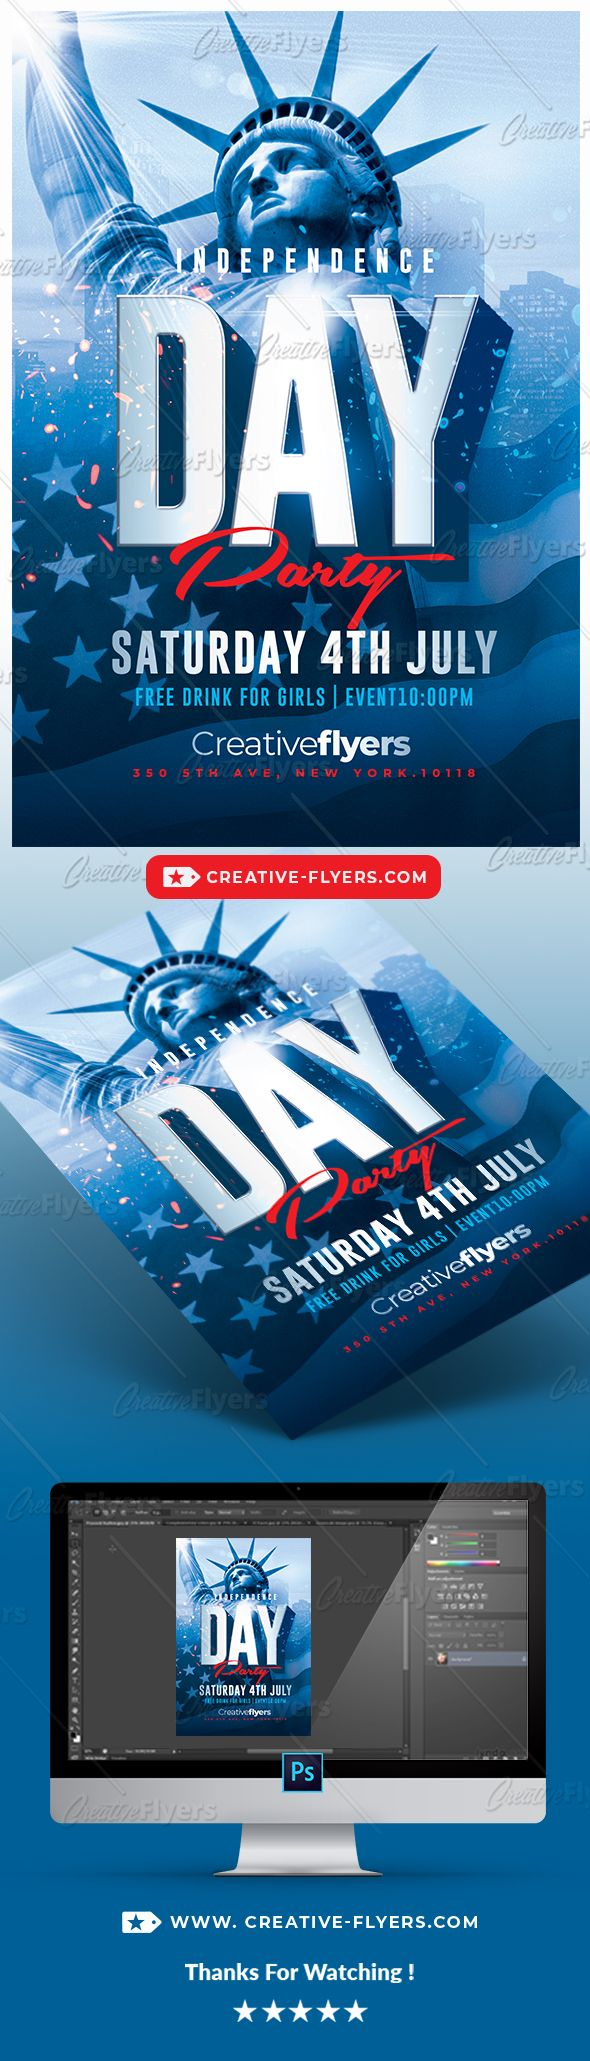 flyer psd creative independence day flyer psd perfect to promote event independence day flyer psd creative party 4thofjuly july celebration